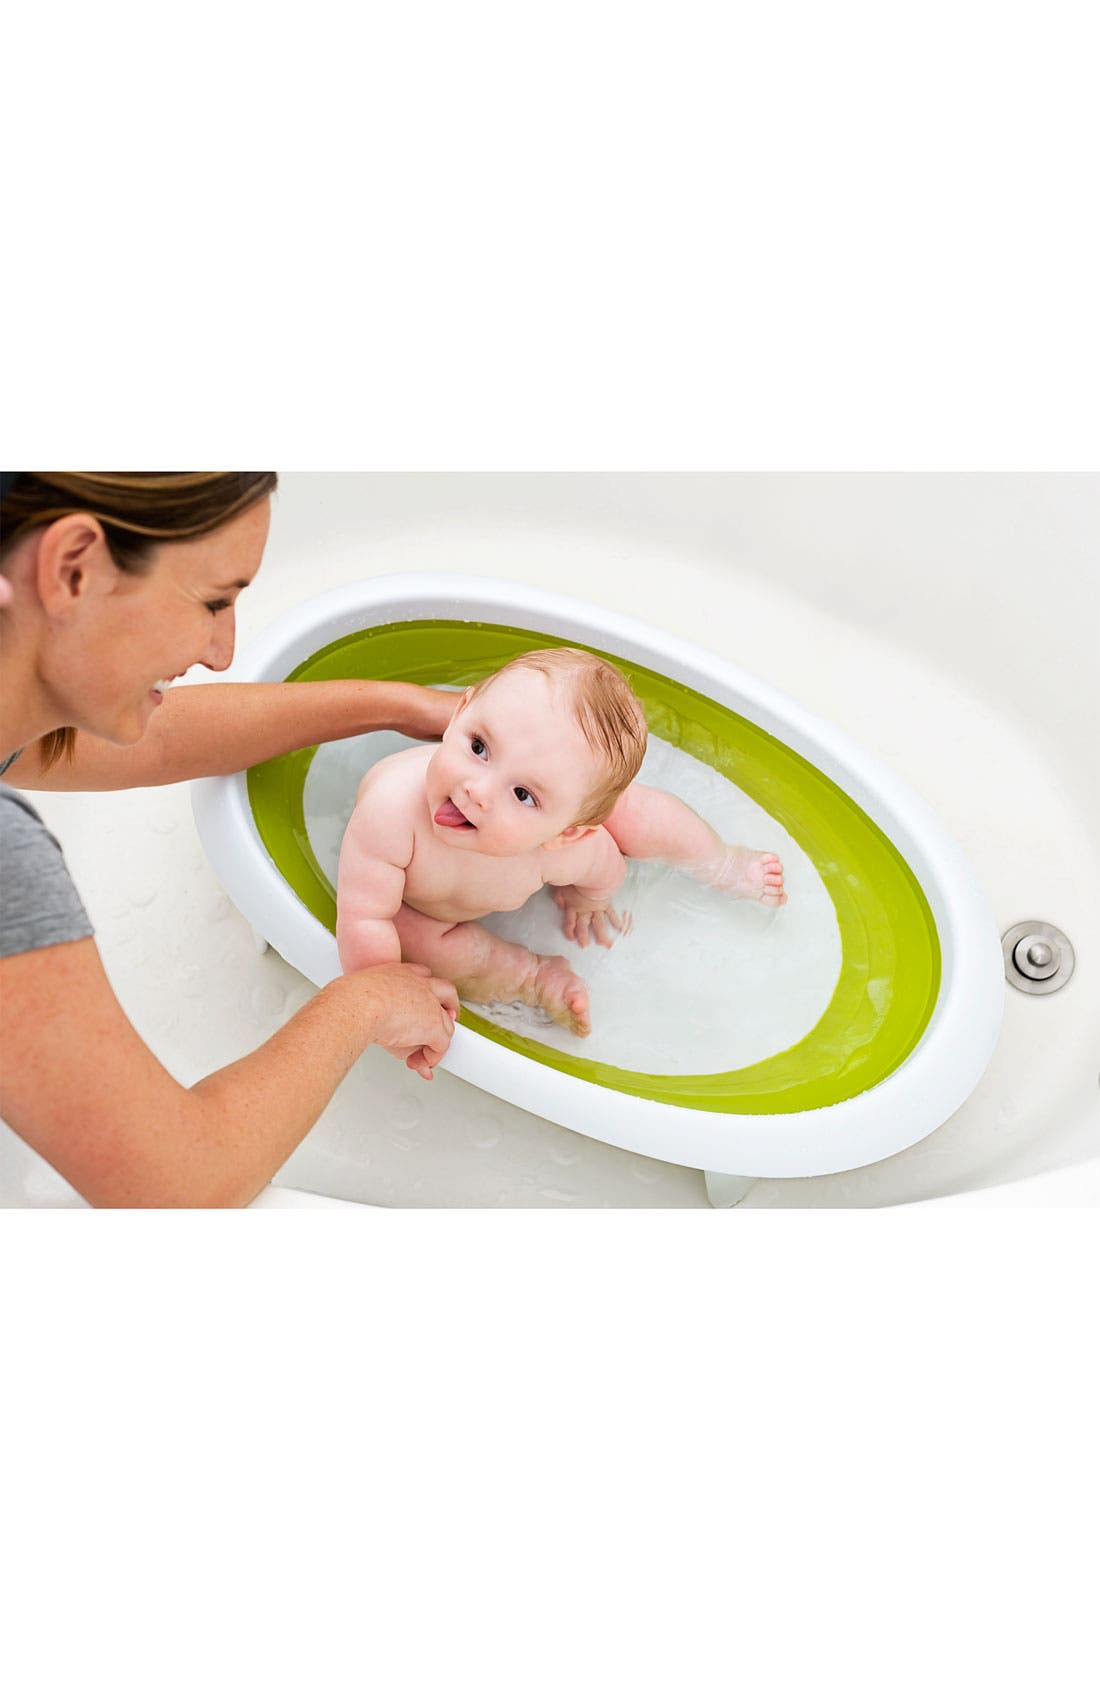 Baby Bathing & Health | Nordstrom